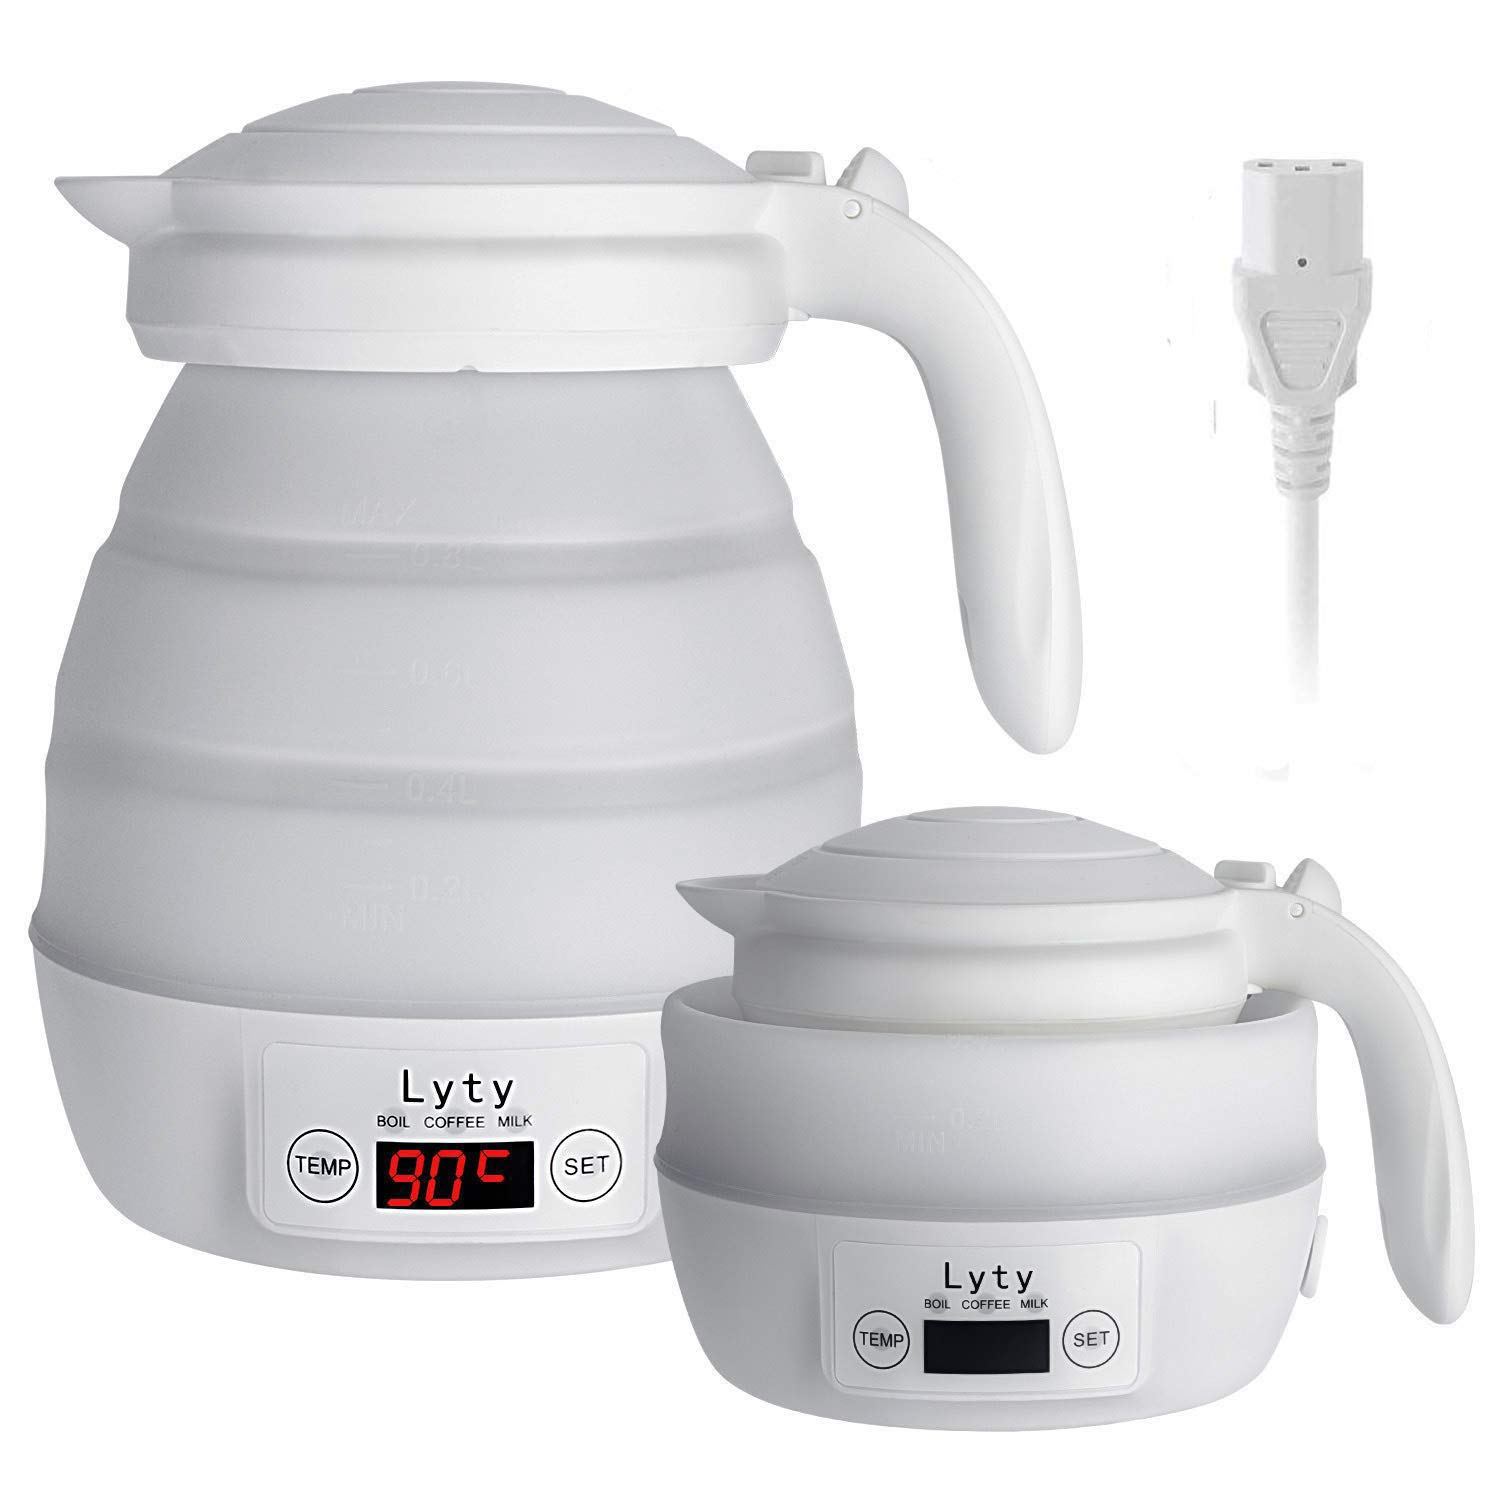 Dual Voltage Collapsible Travel Electric Kettle - 220v/110v/120v [Any Exact Temp Control] Small Fast Water Boiling-Separable Cord-Portable-Food Grade Silicone Foldable Kettle-.8L 850W(White)